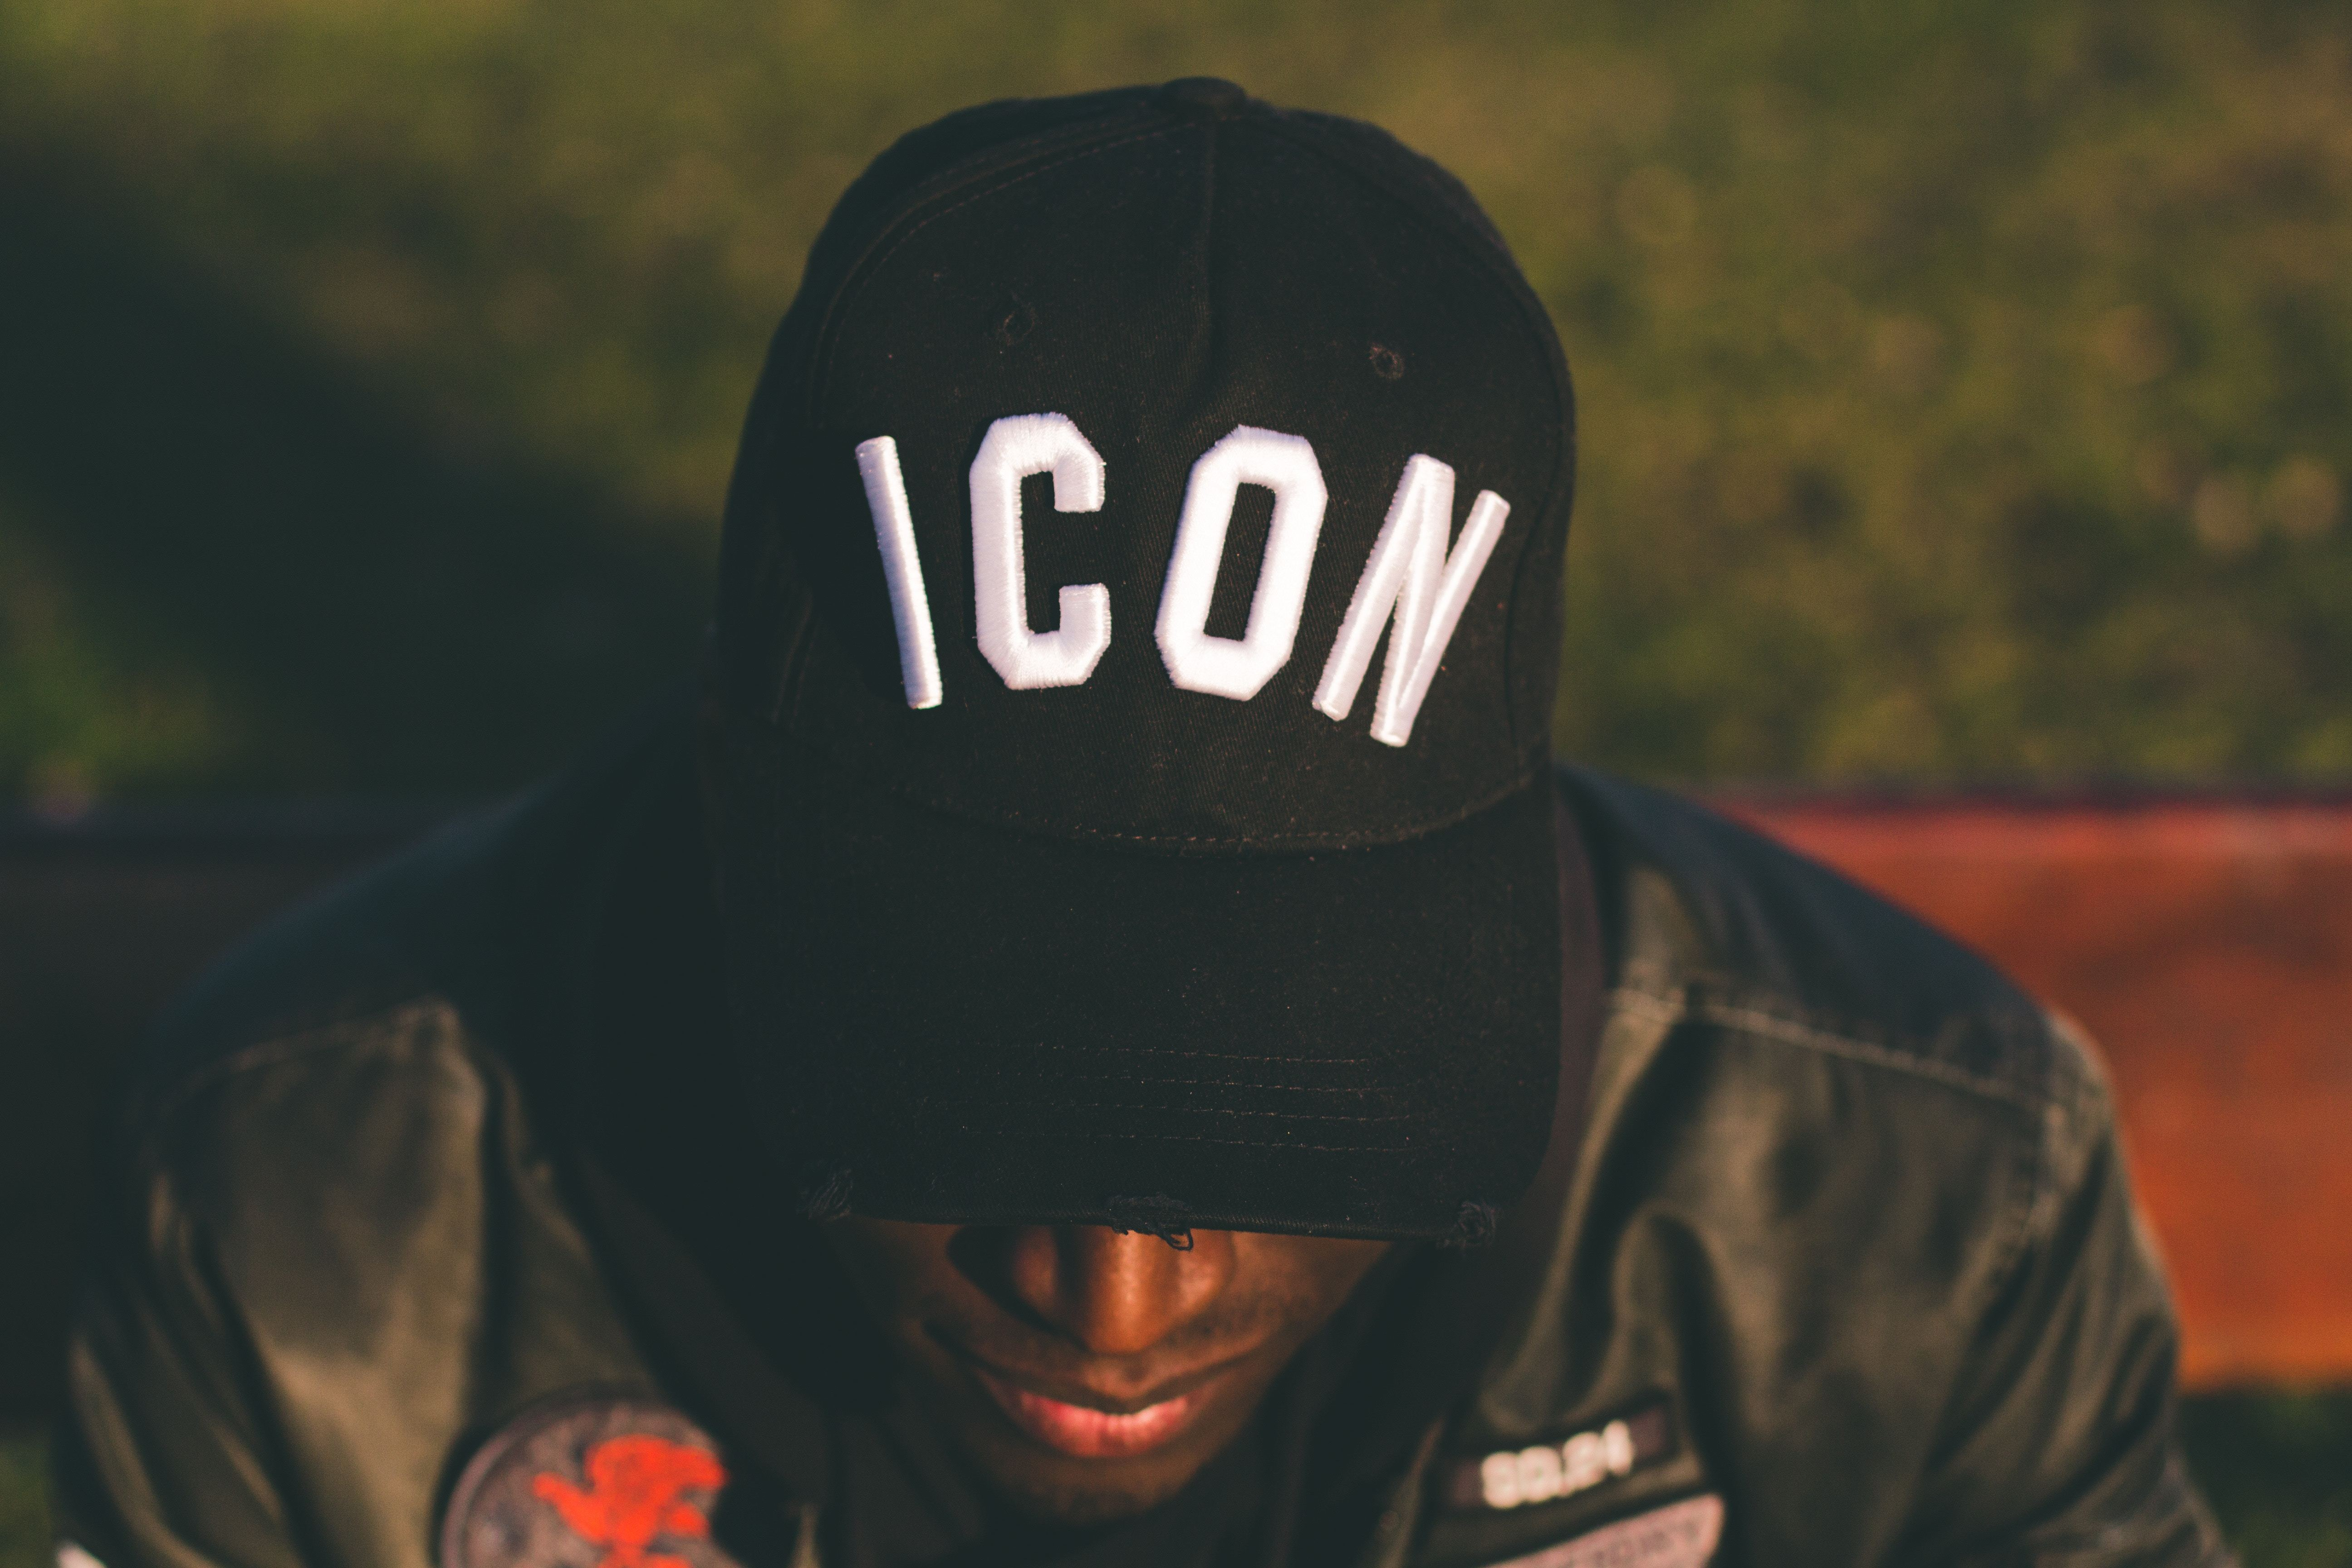 A close-up of a man in a baseball cap displaying the word 'Icon'.